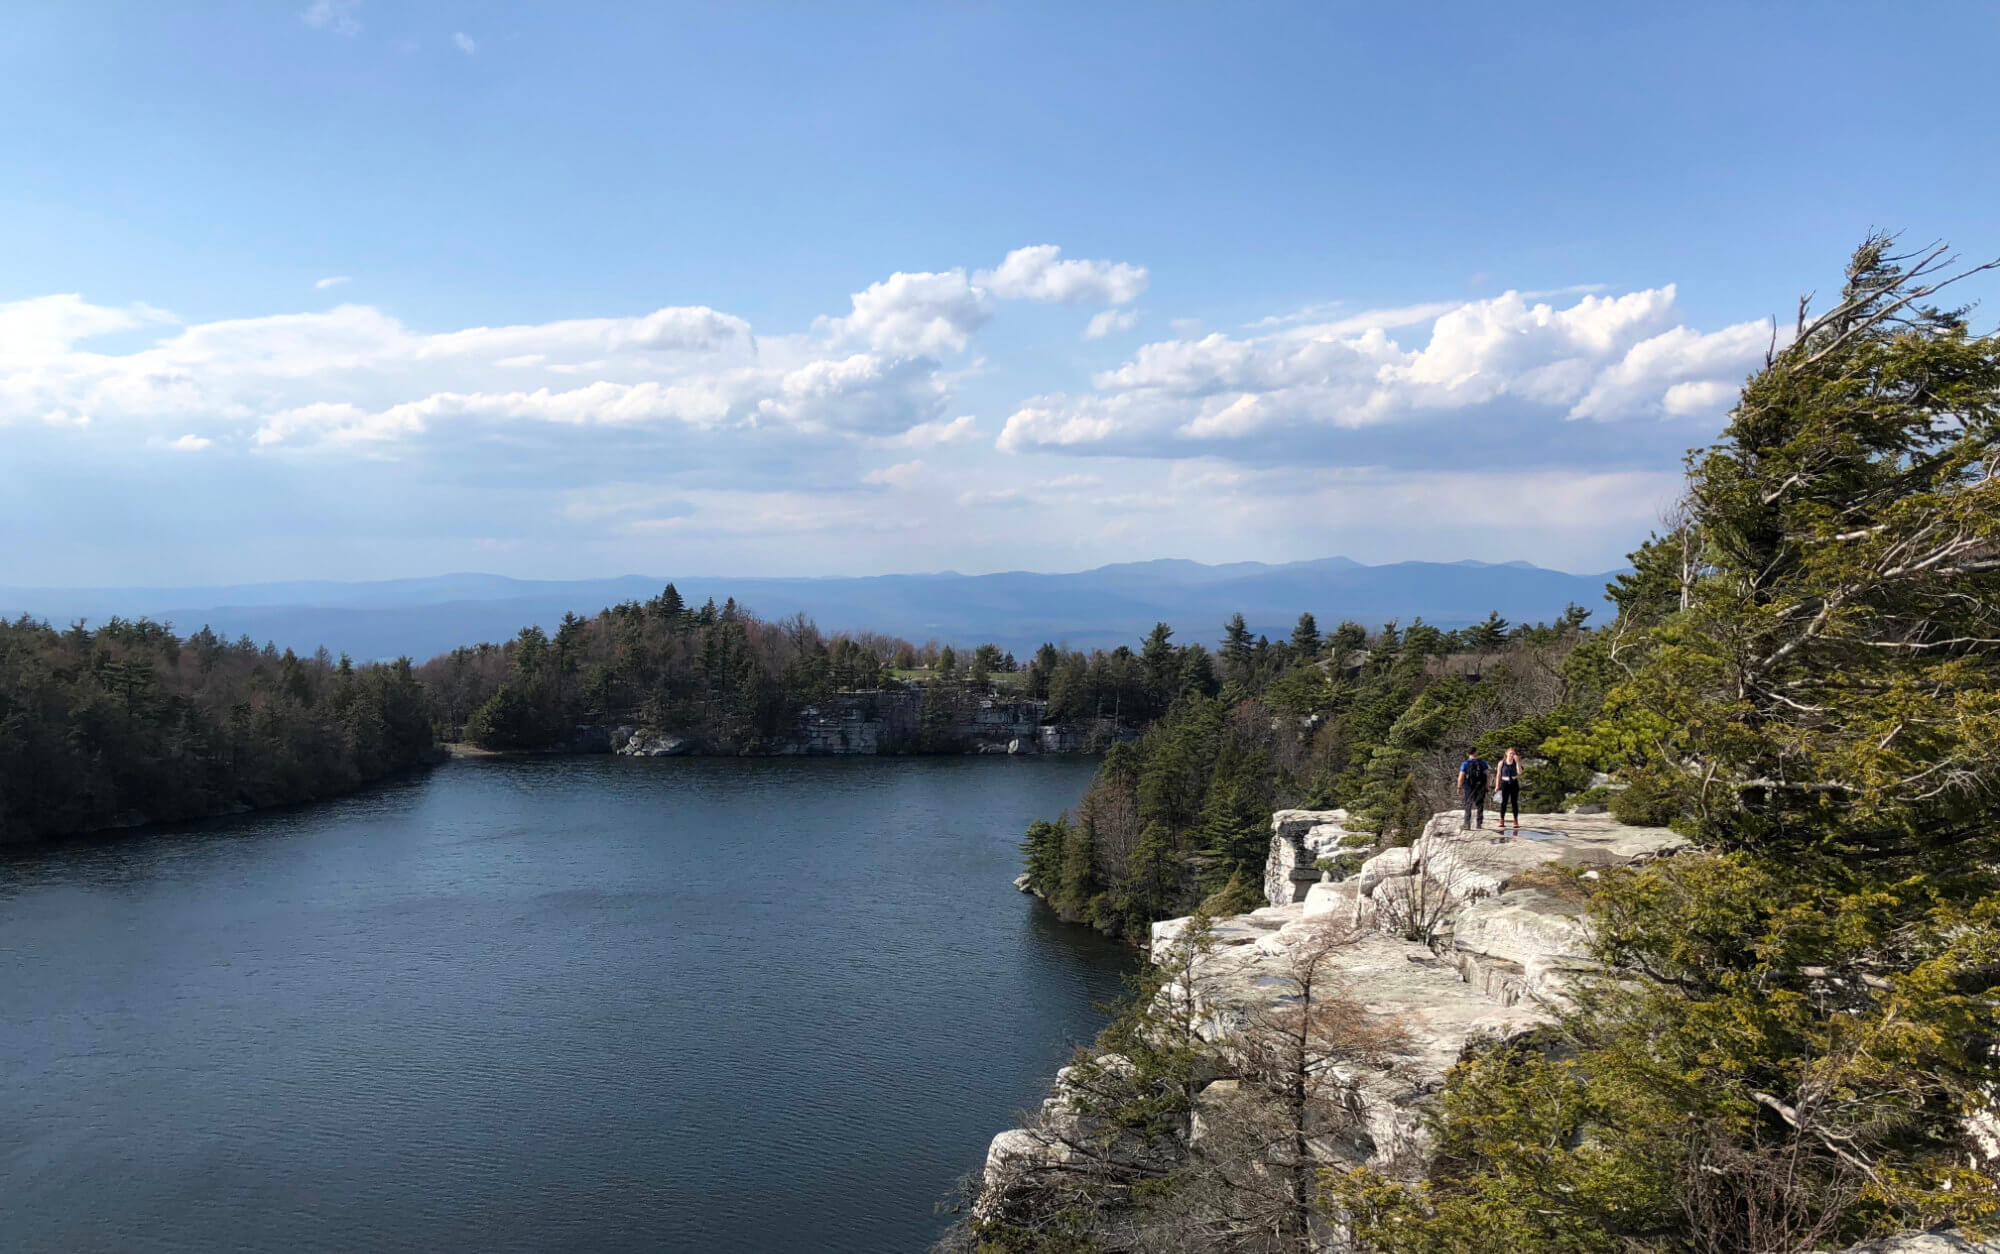 Cliffs above Lake Minnewaska